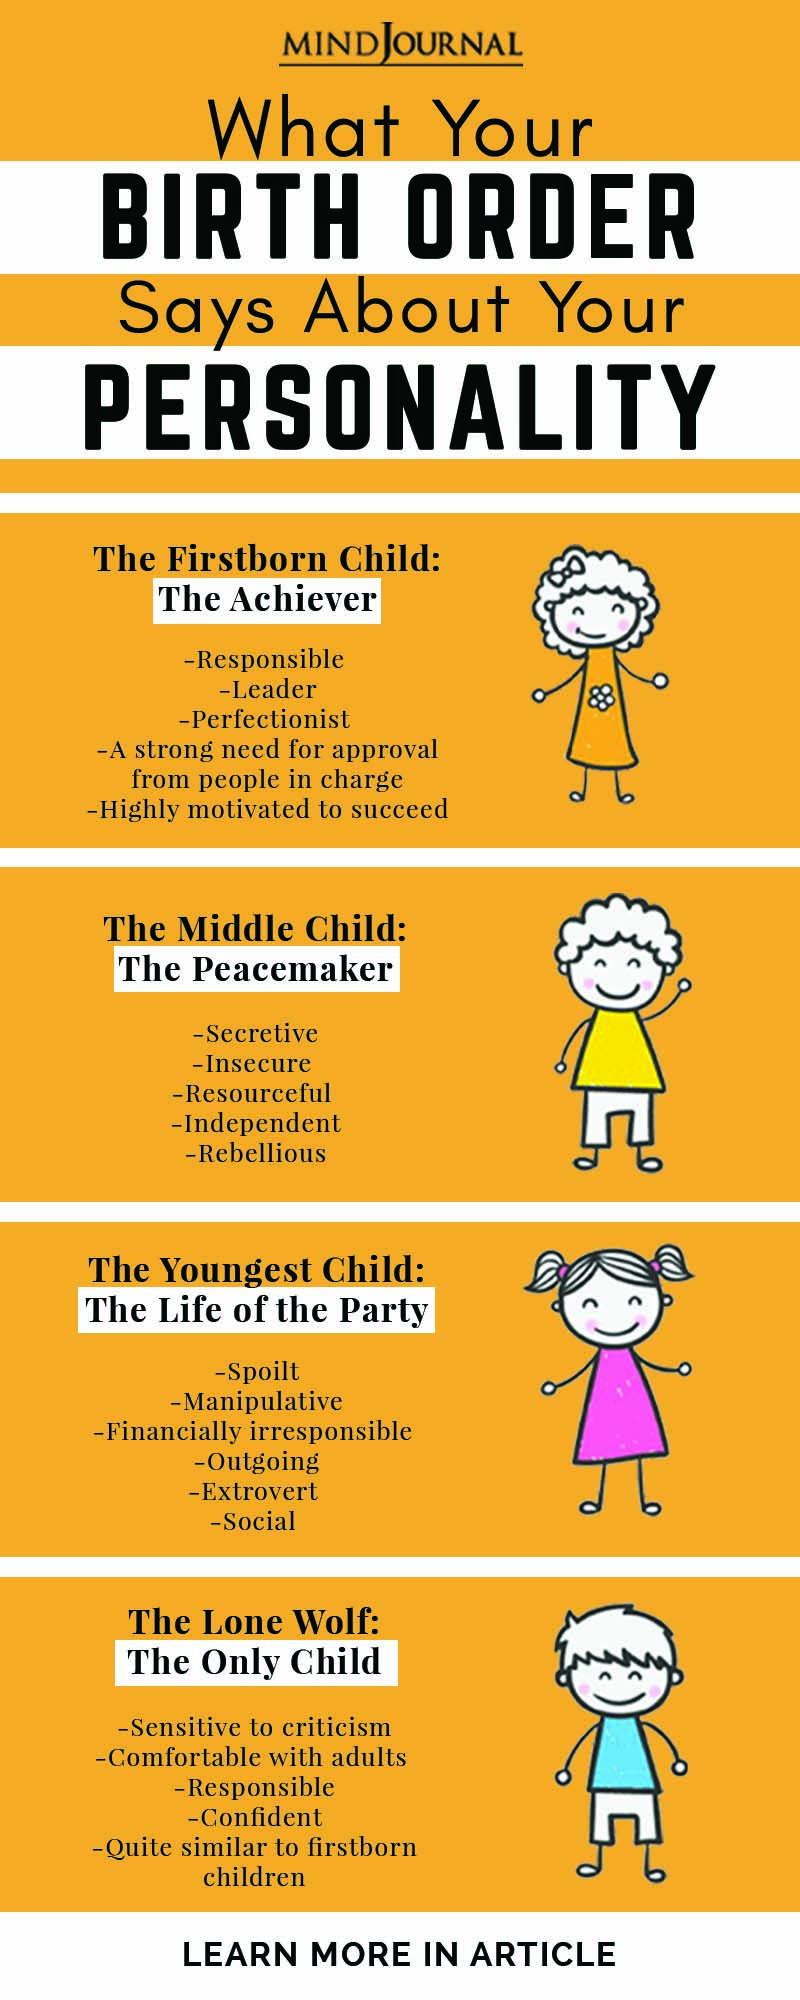 Birth Order Says About Personality Infographic